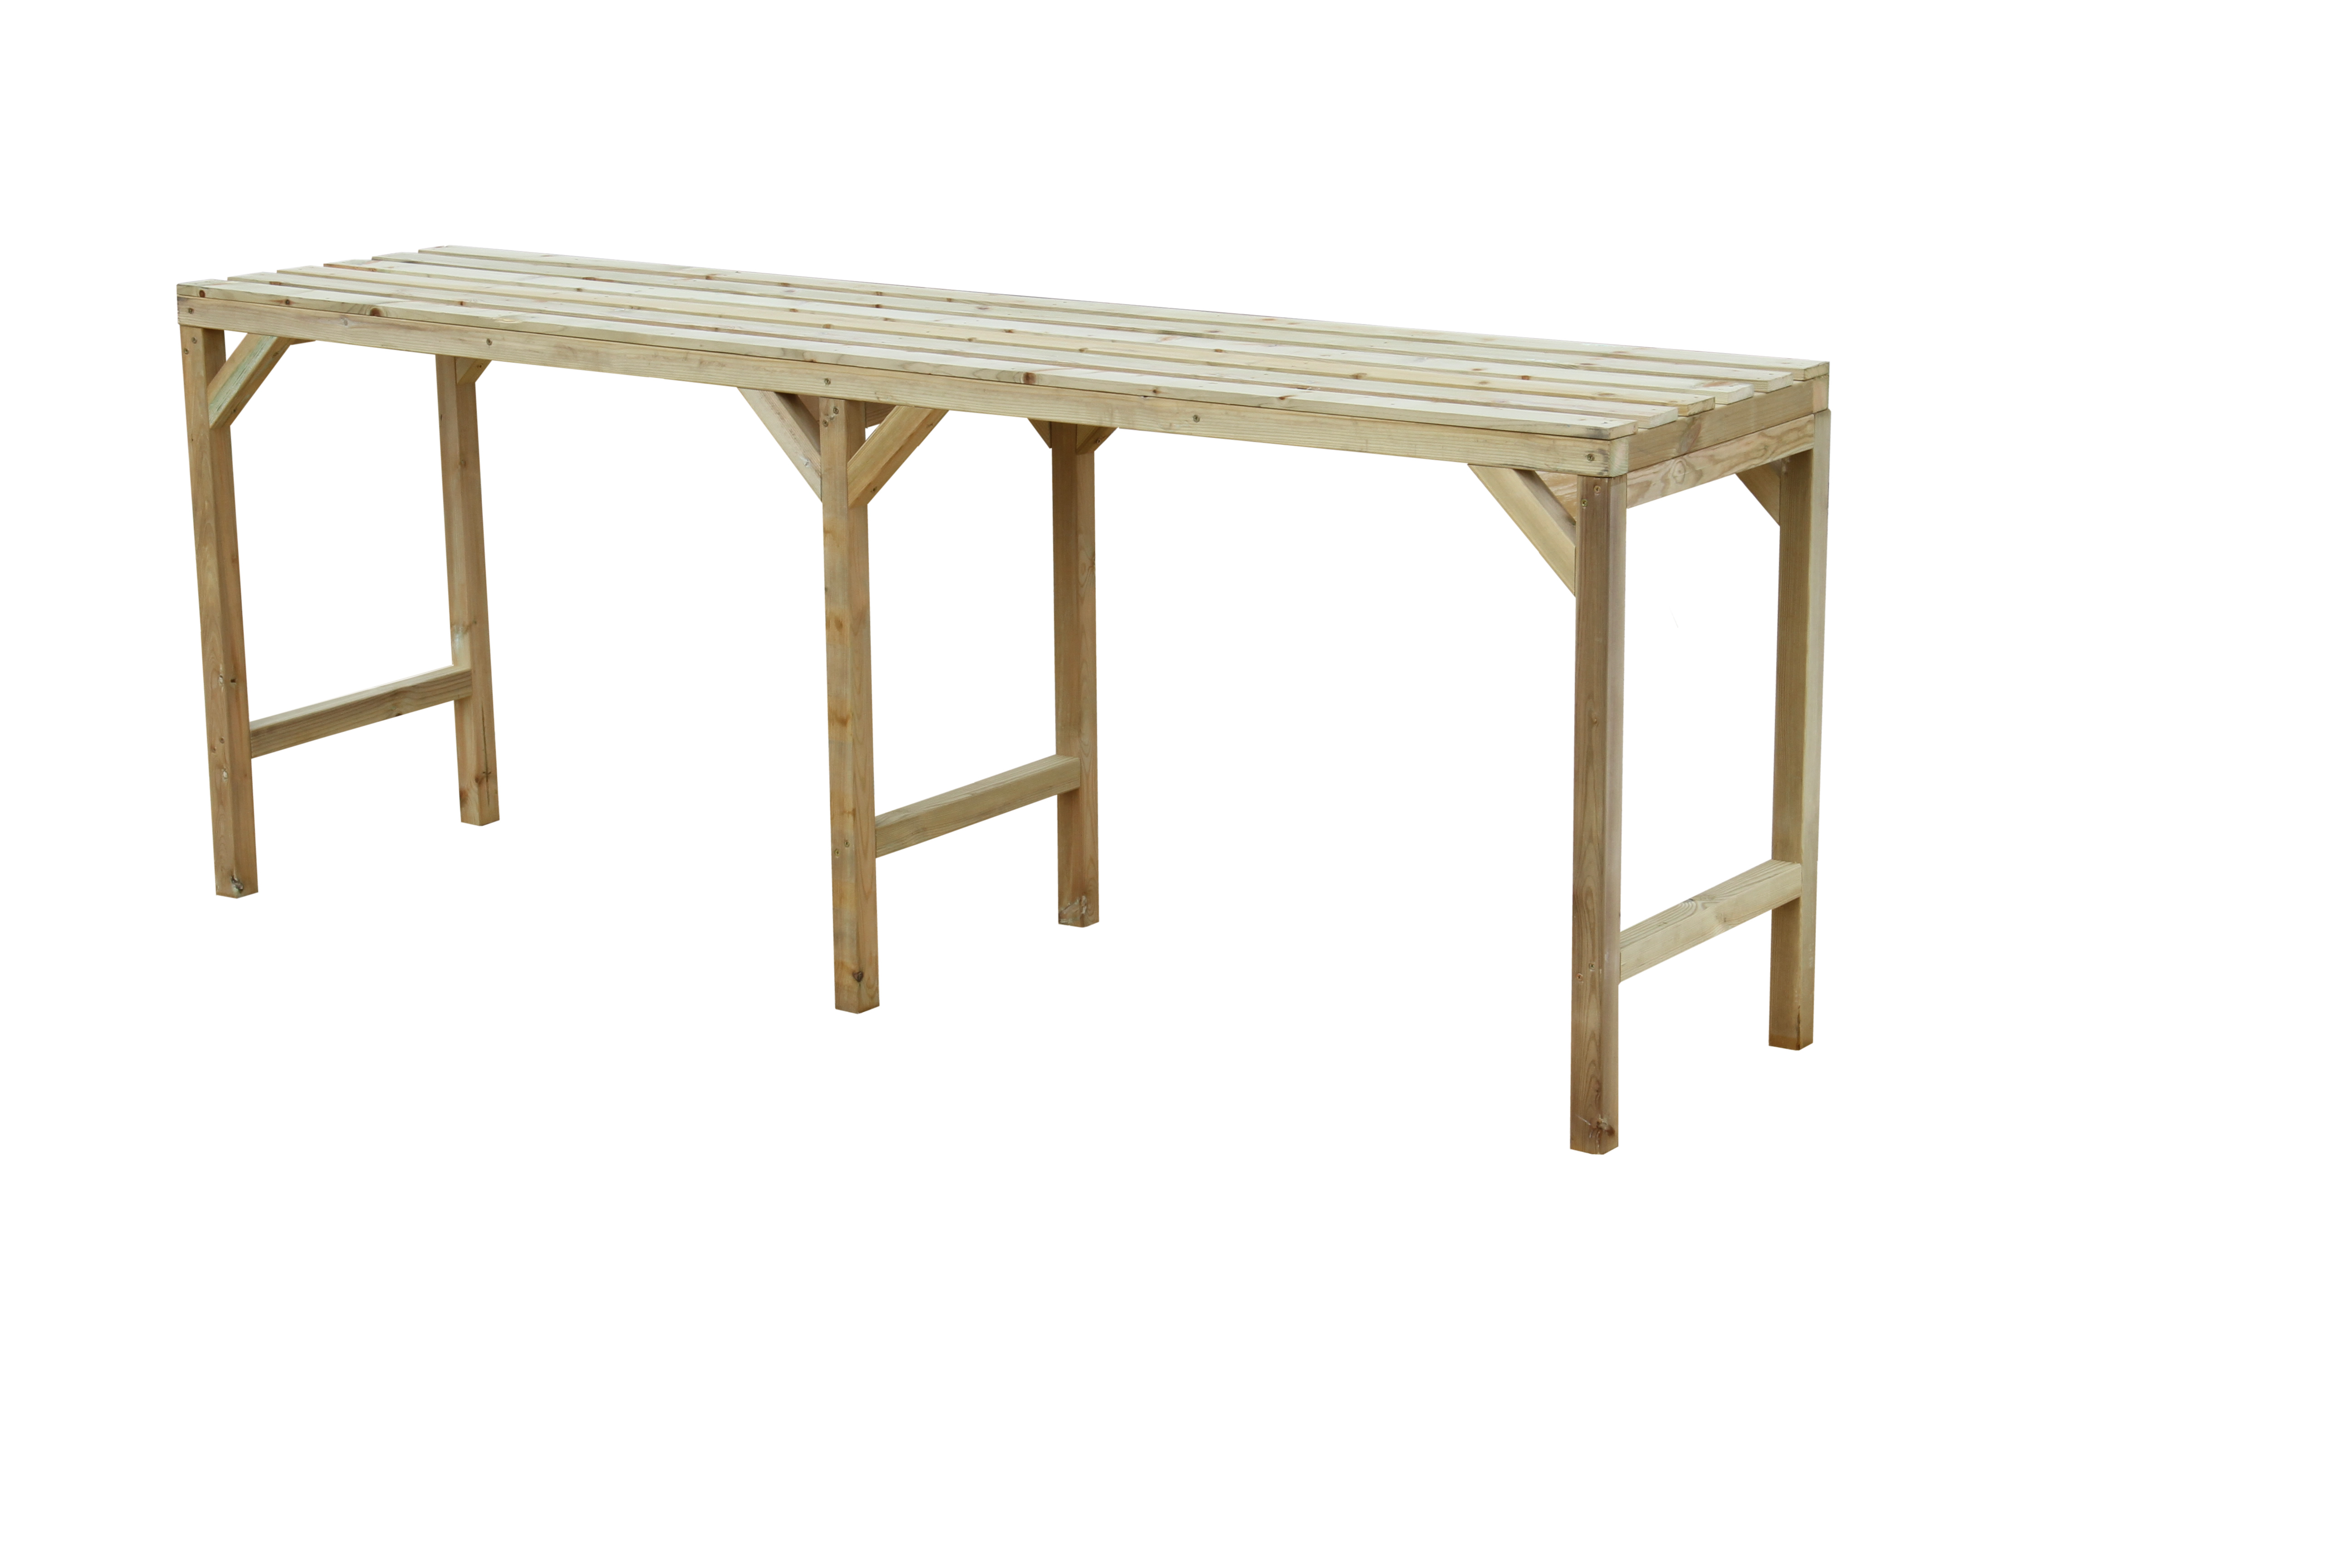 Hercules Greenhouse Staging Bench Wooden 8ft Long X 22 Wide Ebay